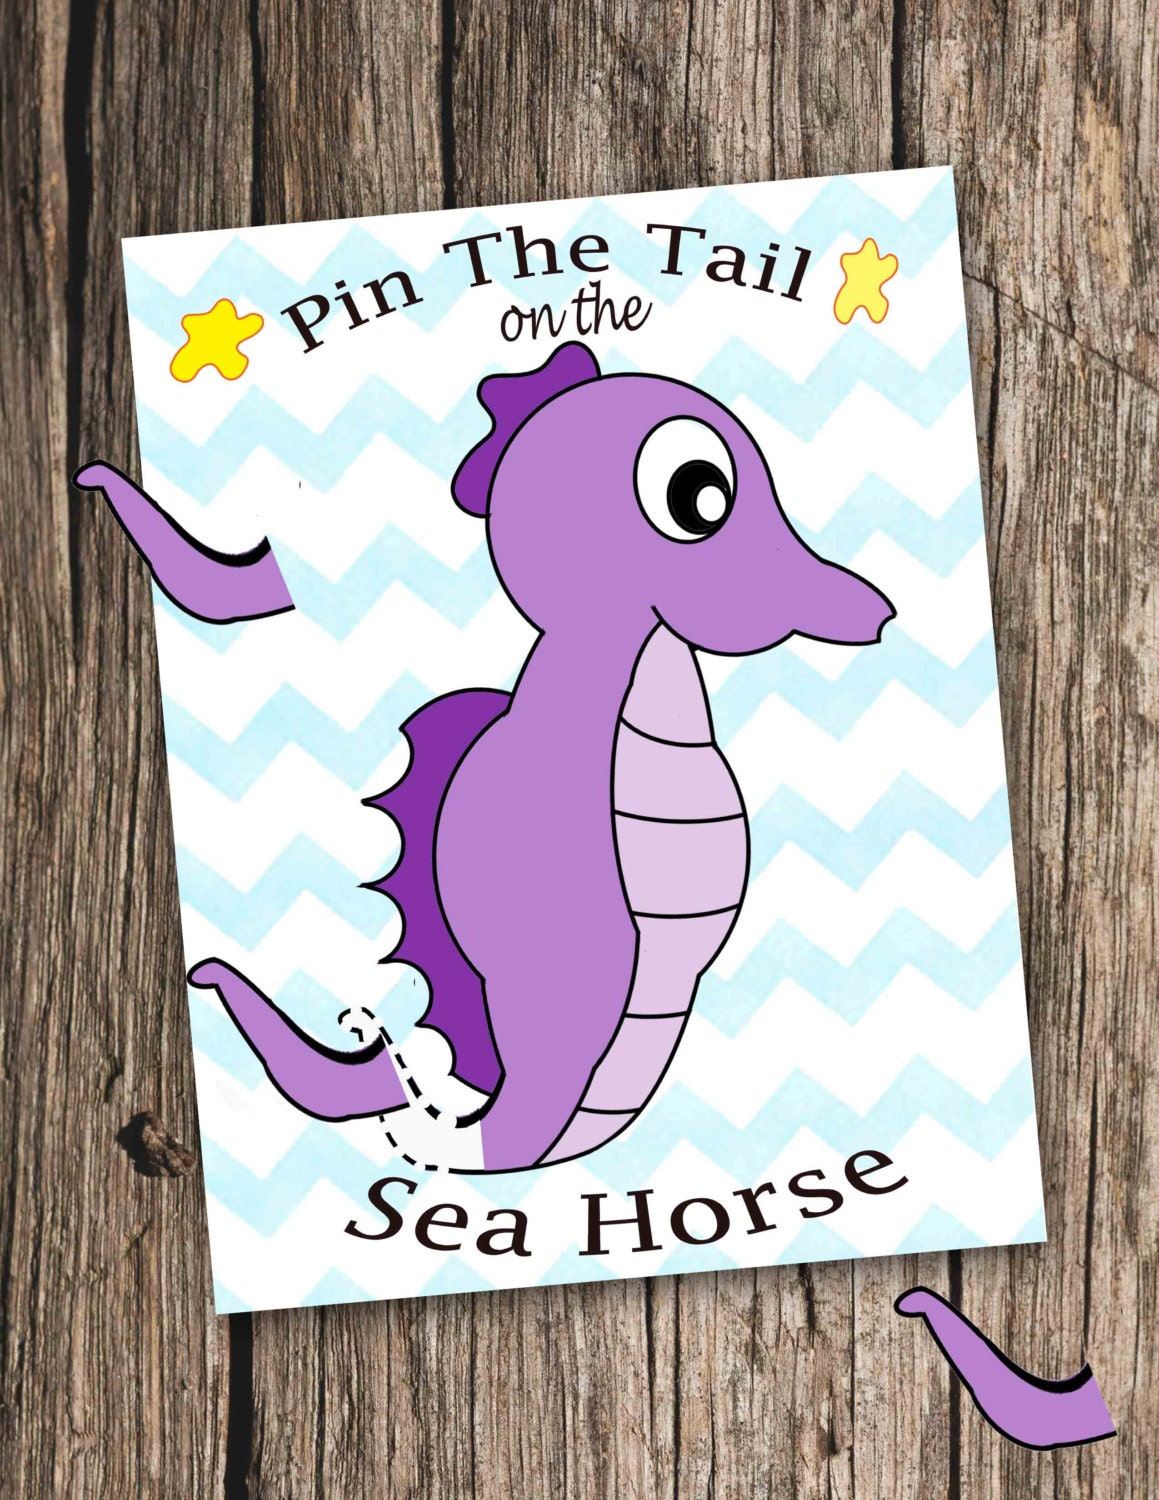 Pin the Tail on the Seahorse Pin the tail on the donkey game